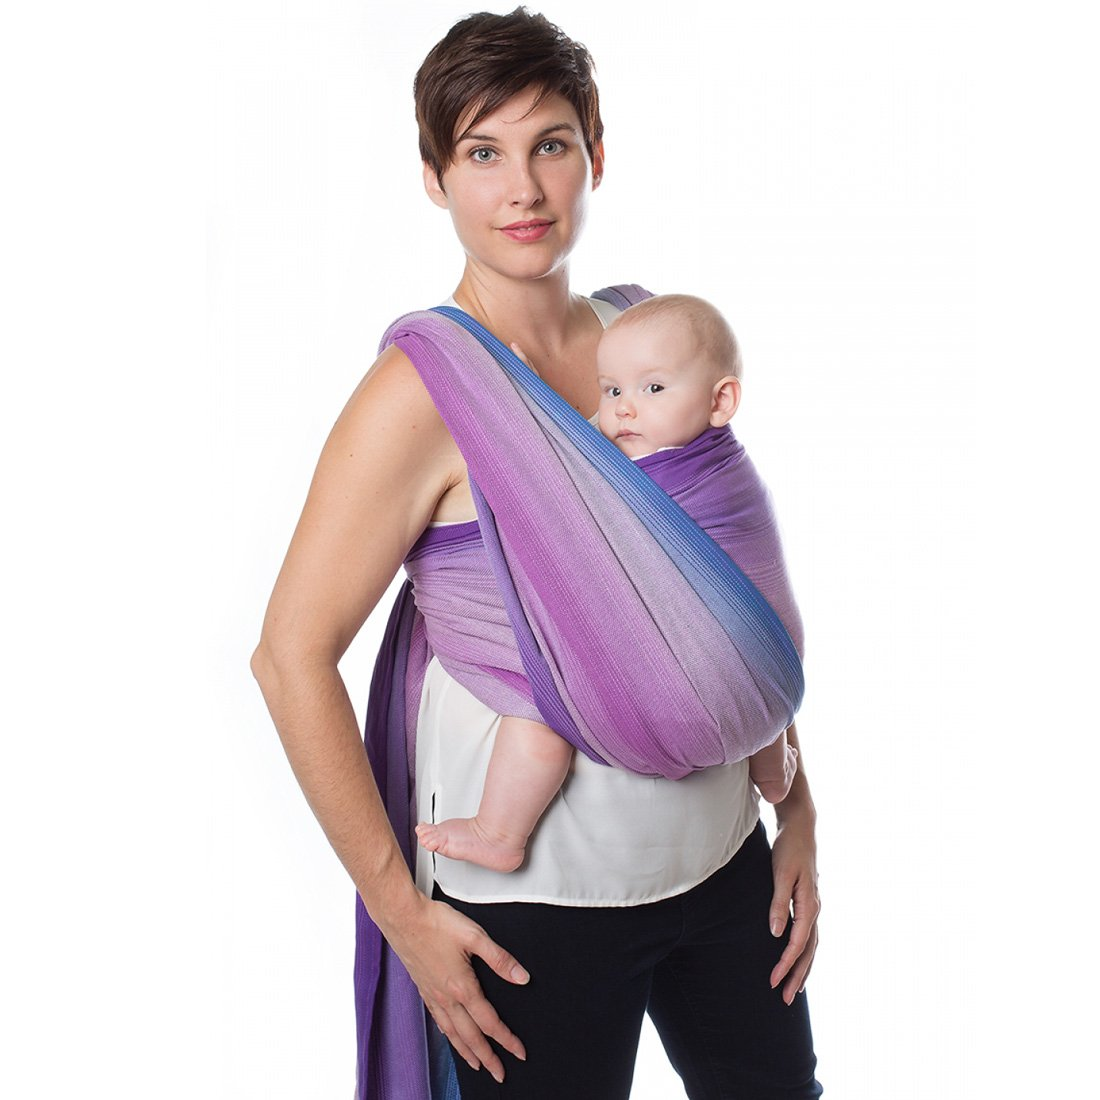 Made in Canada Chimparoo Organic Cotton Woven Baby Wrap Regular Size 4.5 Meter Amethyst